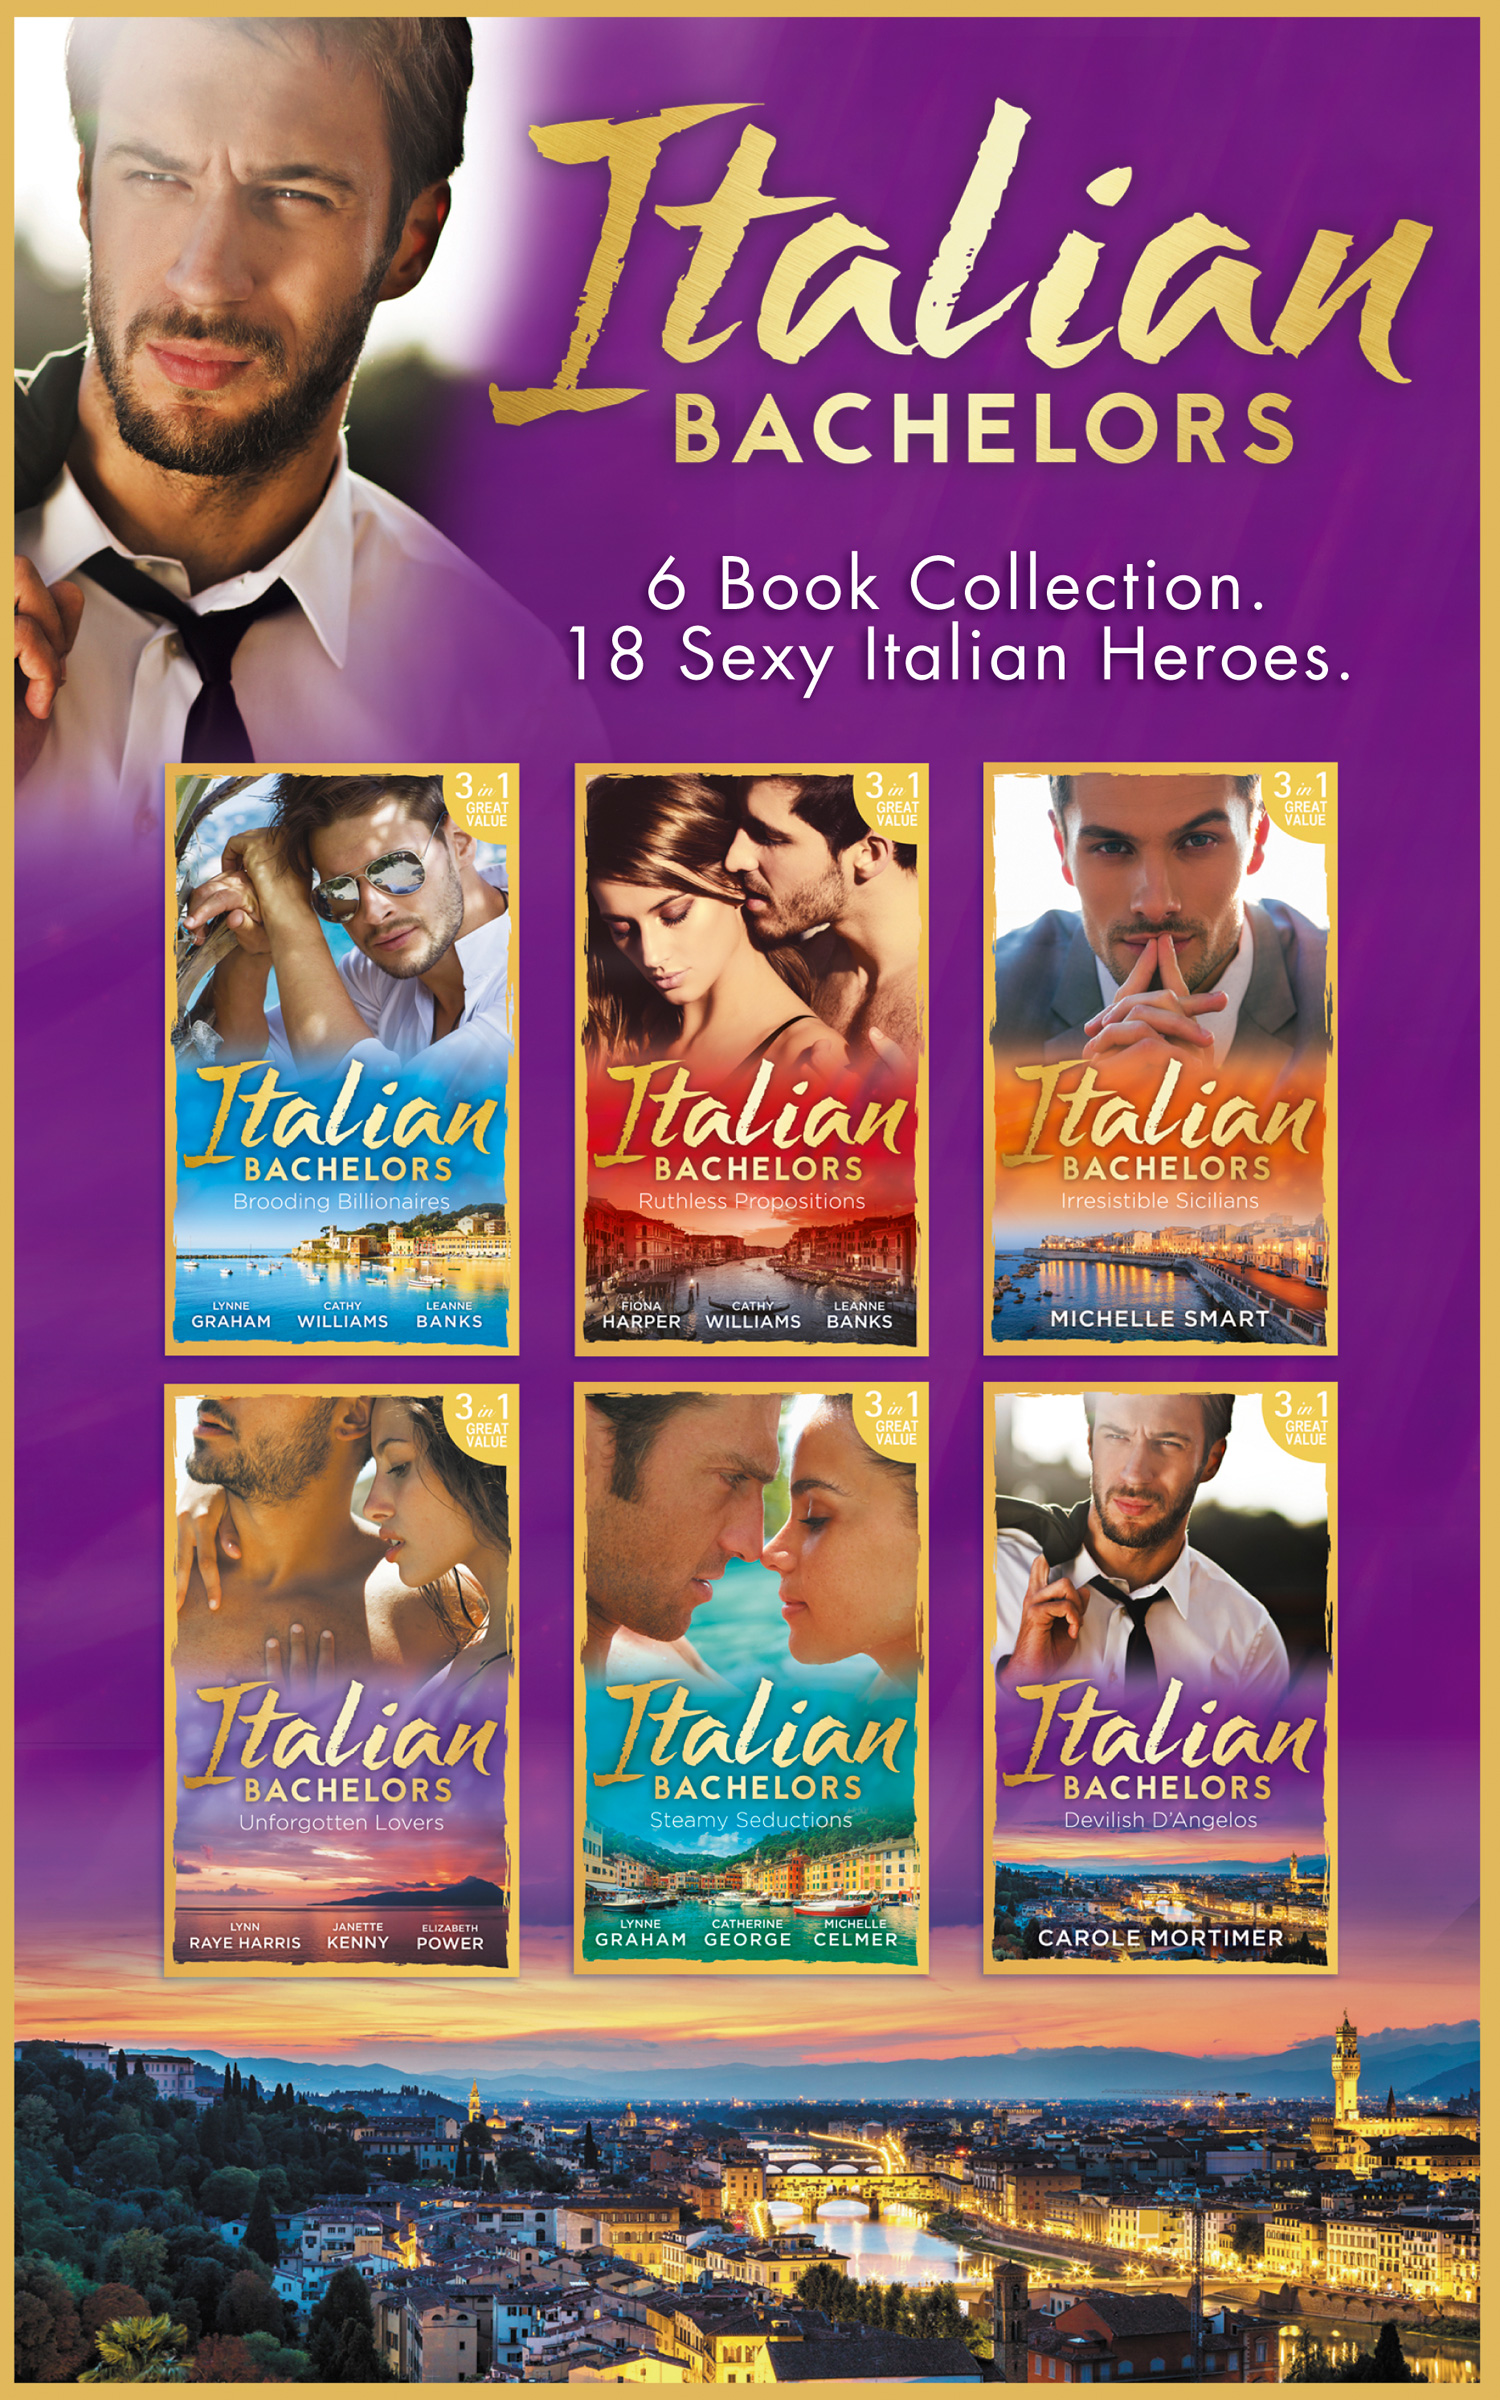 The Italian Bachelors Collection